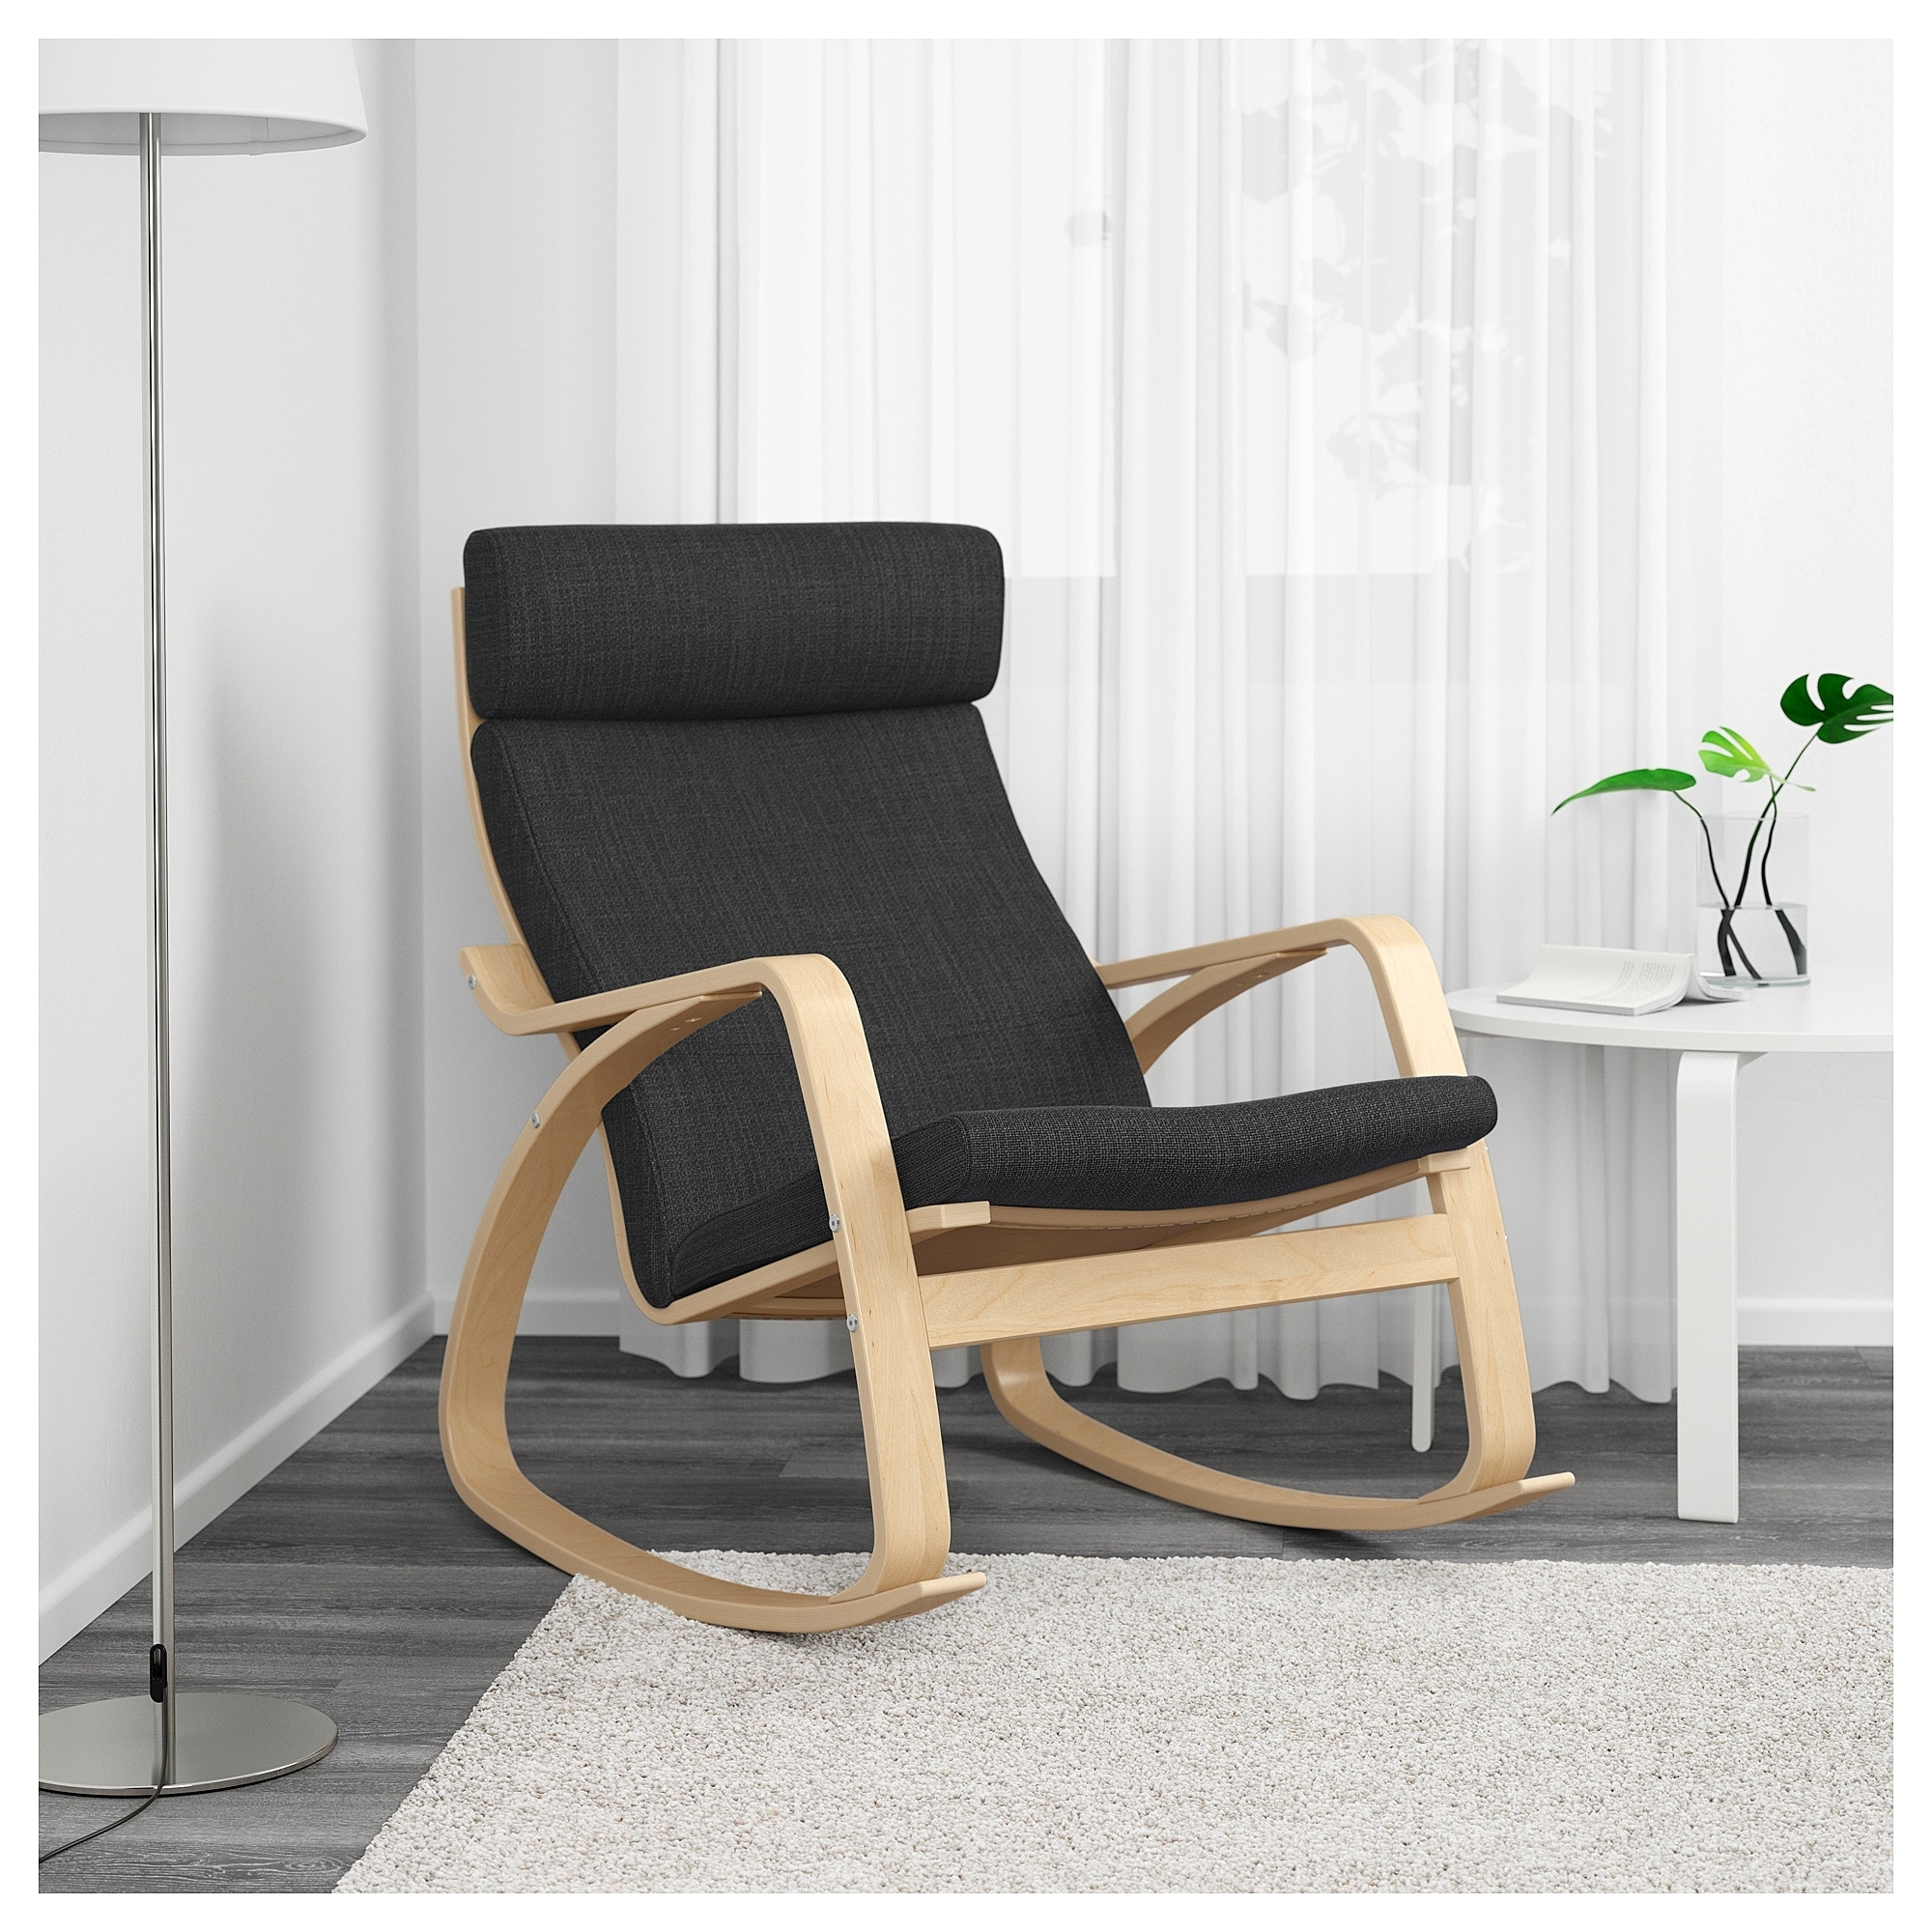 Ikea Rocking Chairs With Most Current Poäng Rocking Chair Birch Veneer/hillared Anthracite – Ikea (View 6 of 15)